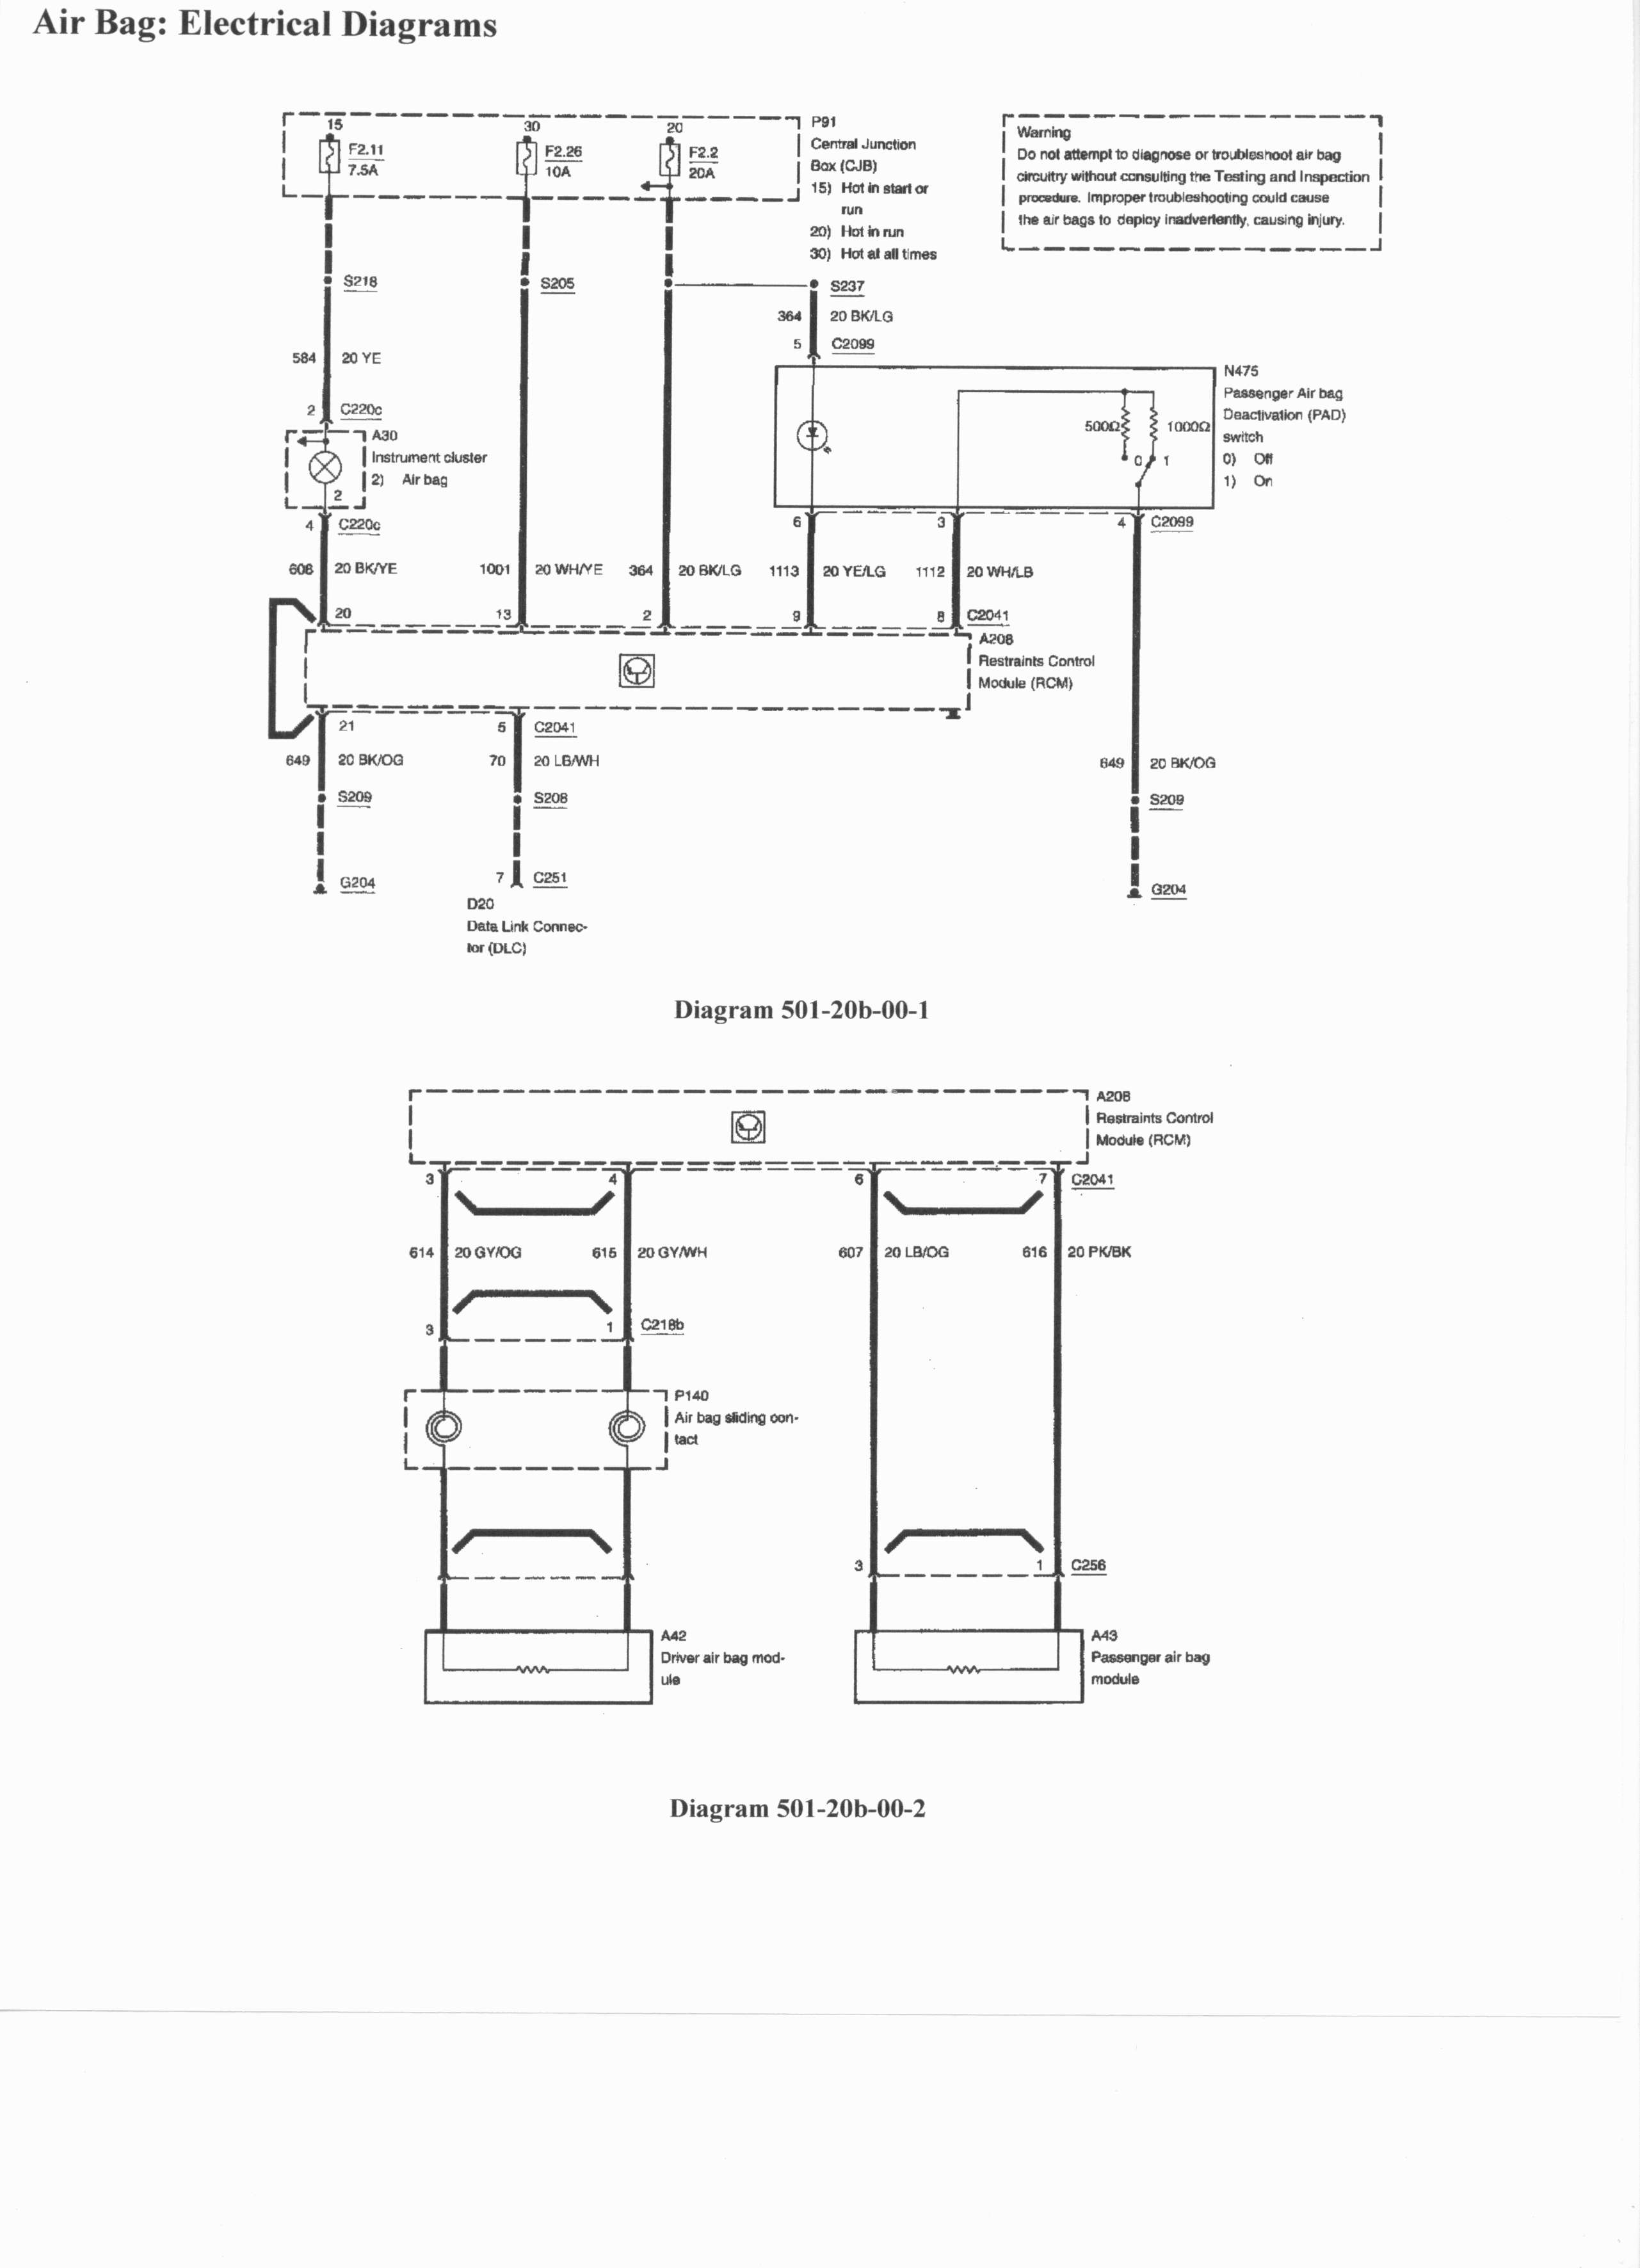 Customer Here are the wiring diagrams and diag procedure, Hope this helps,  Al